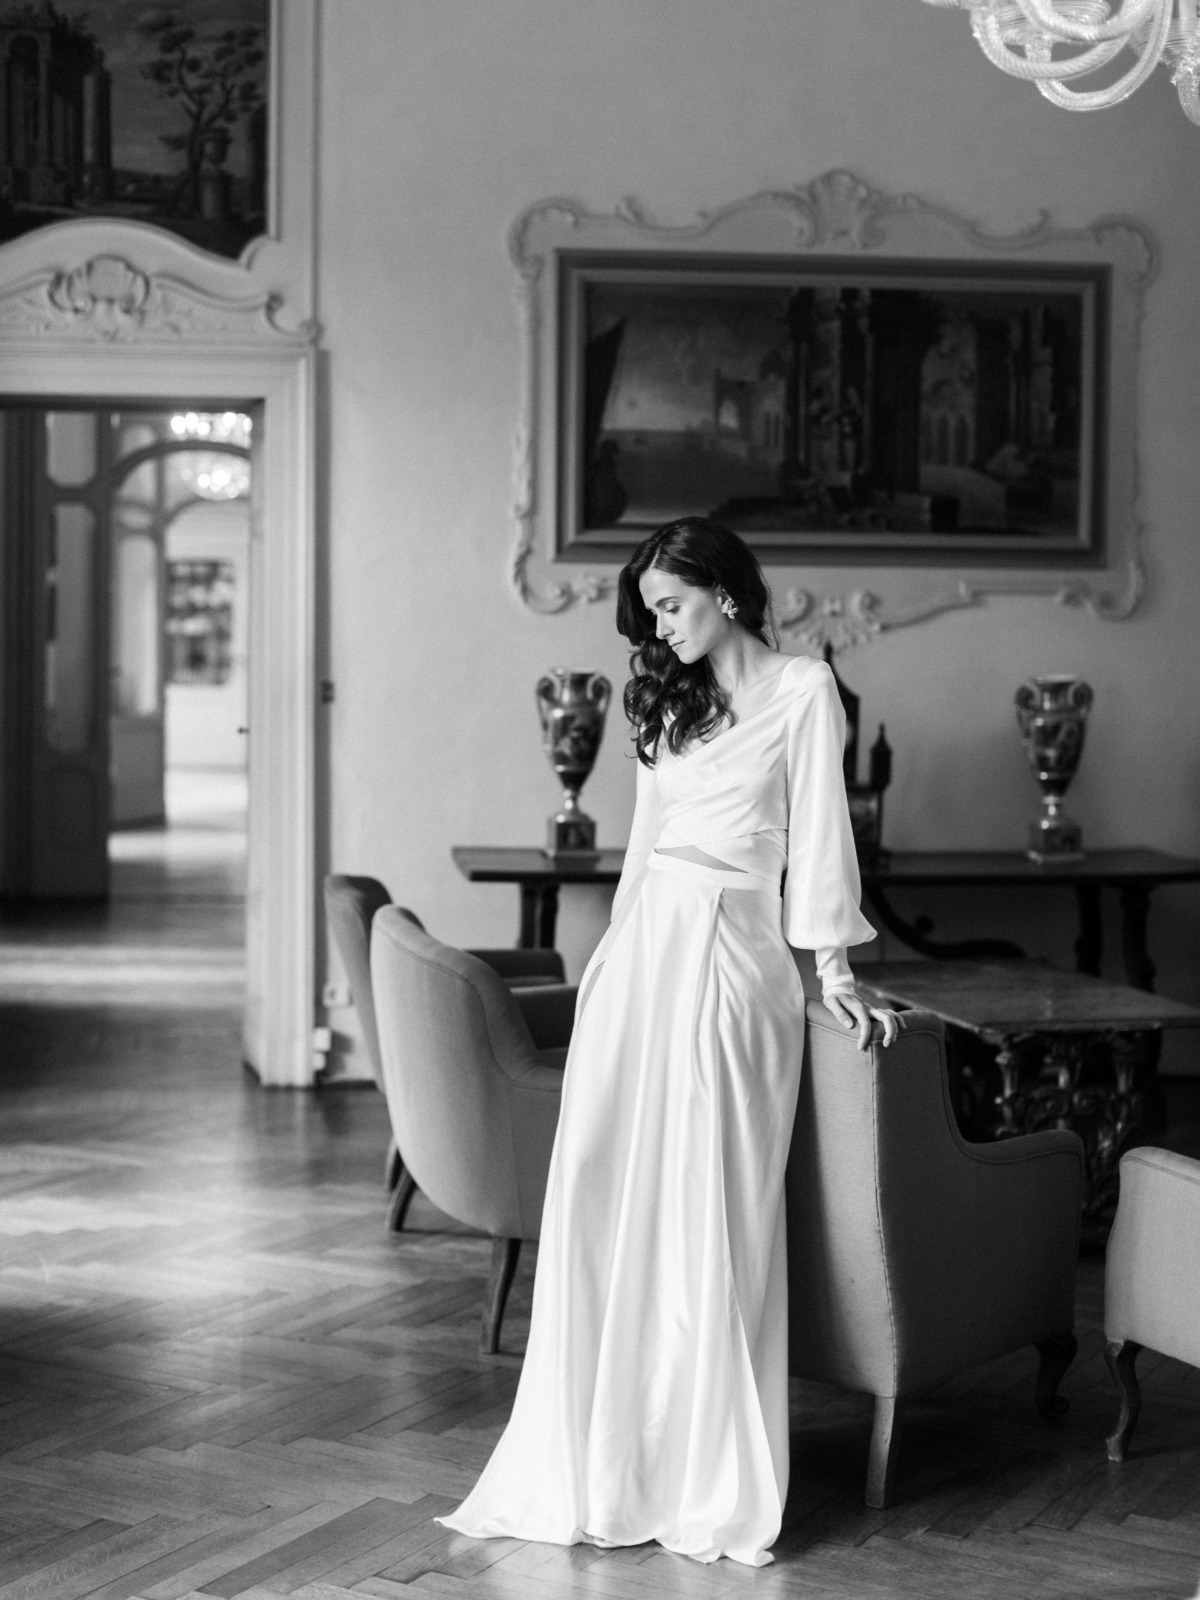 Malvina Frolova Destination wedding photographer